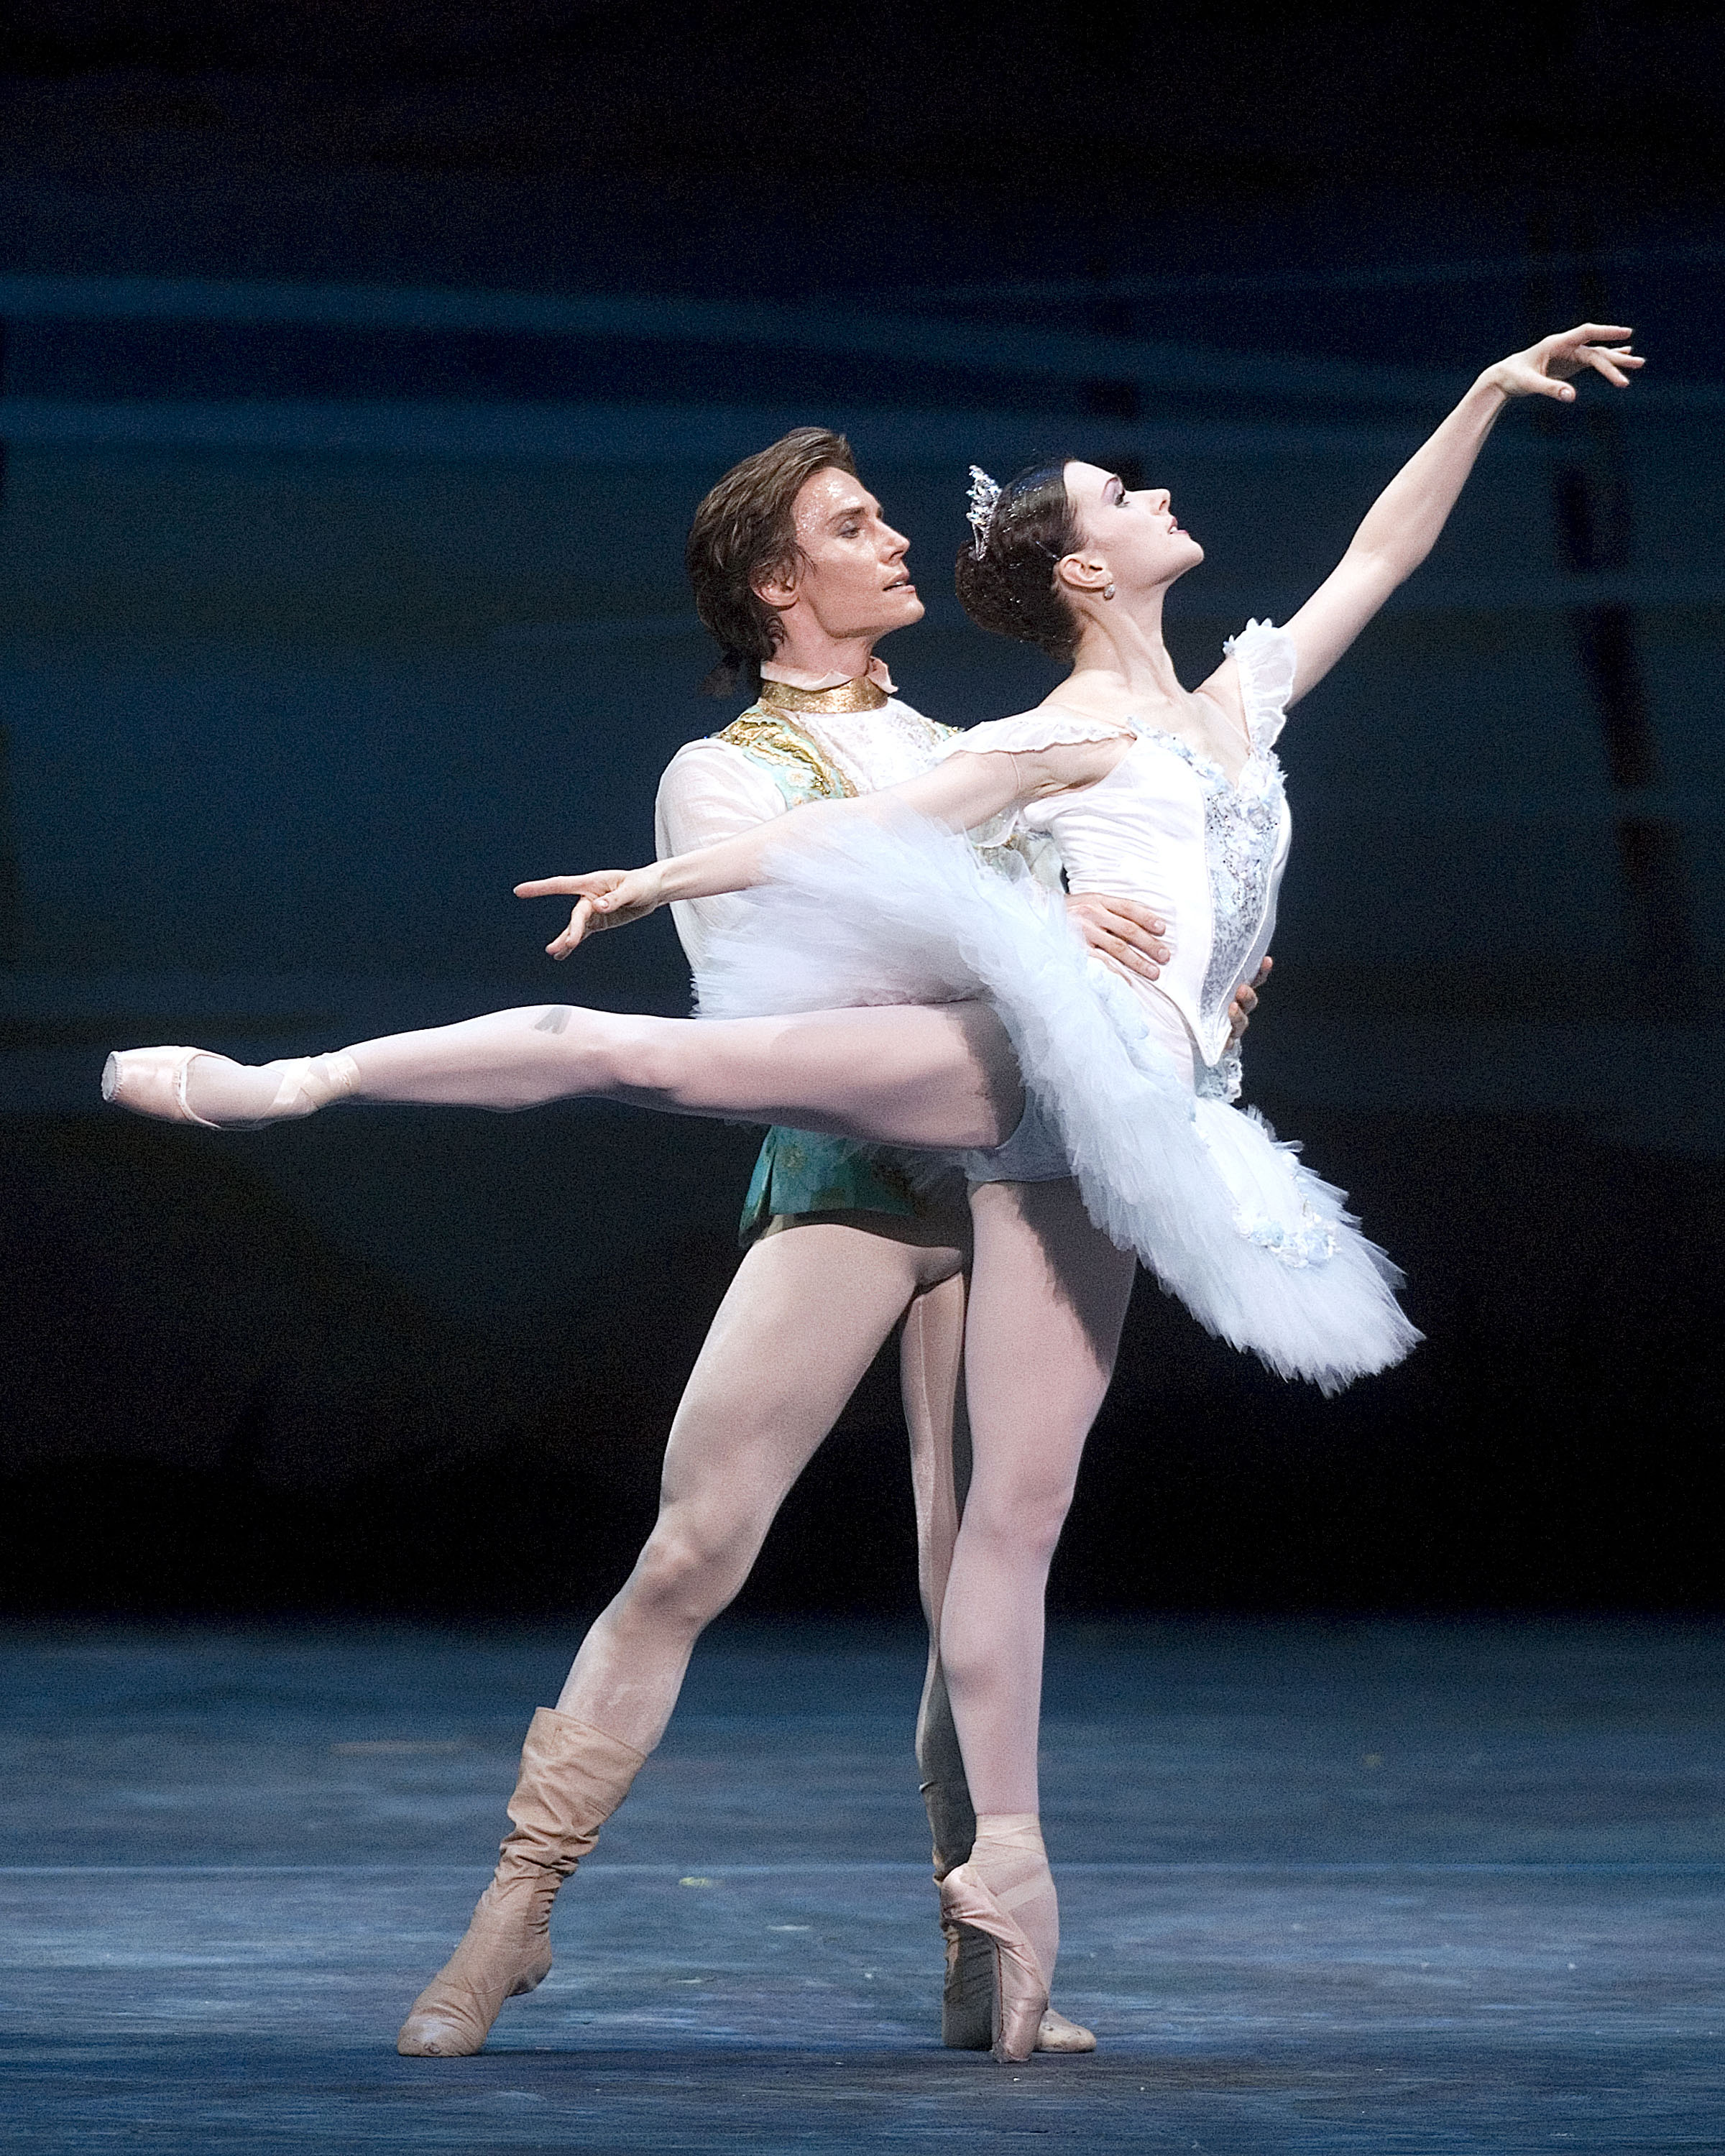 Irina Dvorovenko and Maxim Beloserkovsky, principal dancers with the American Ballet Theatre (ABT